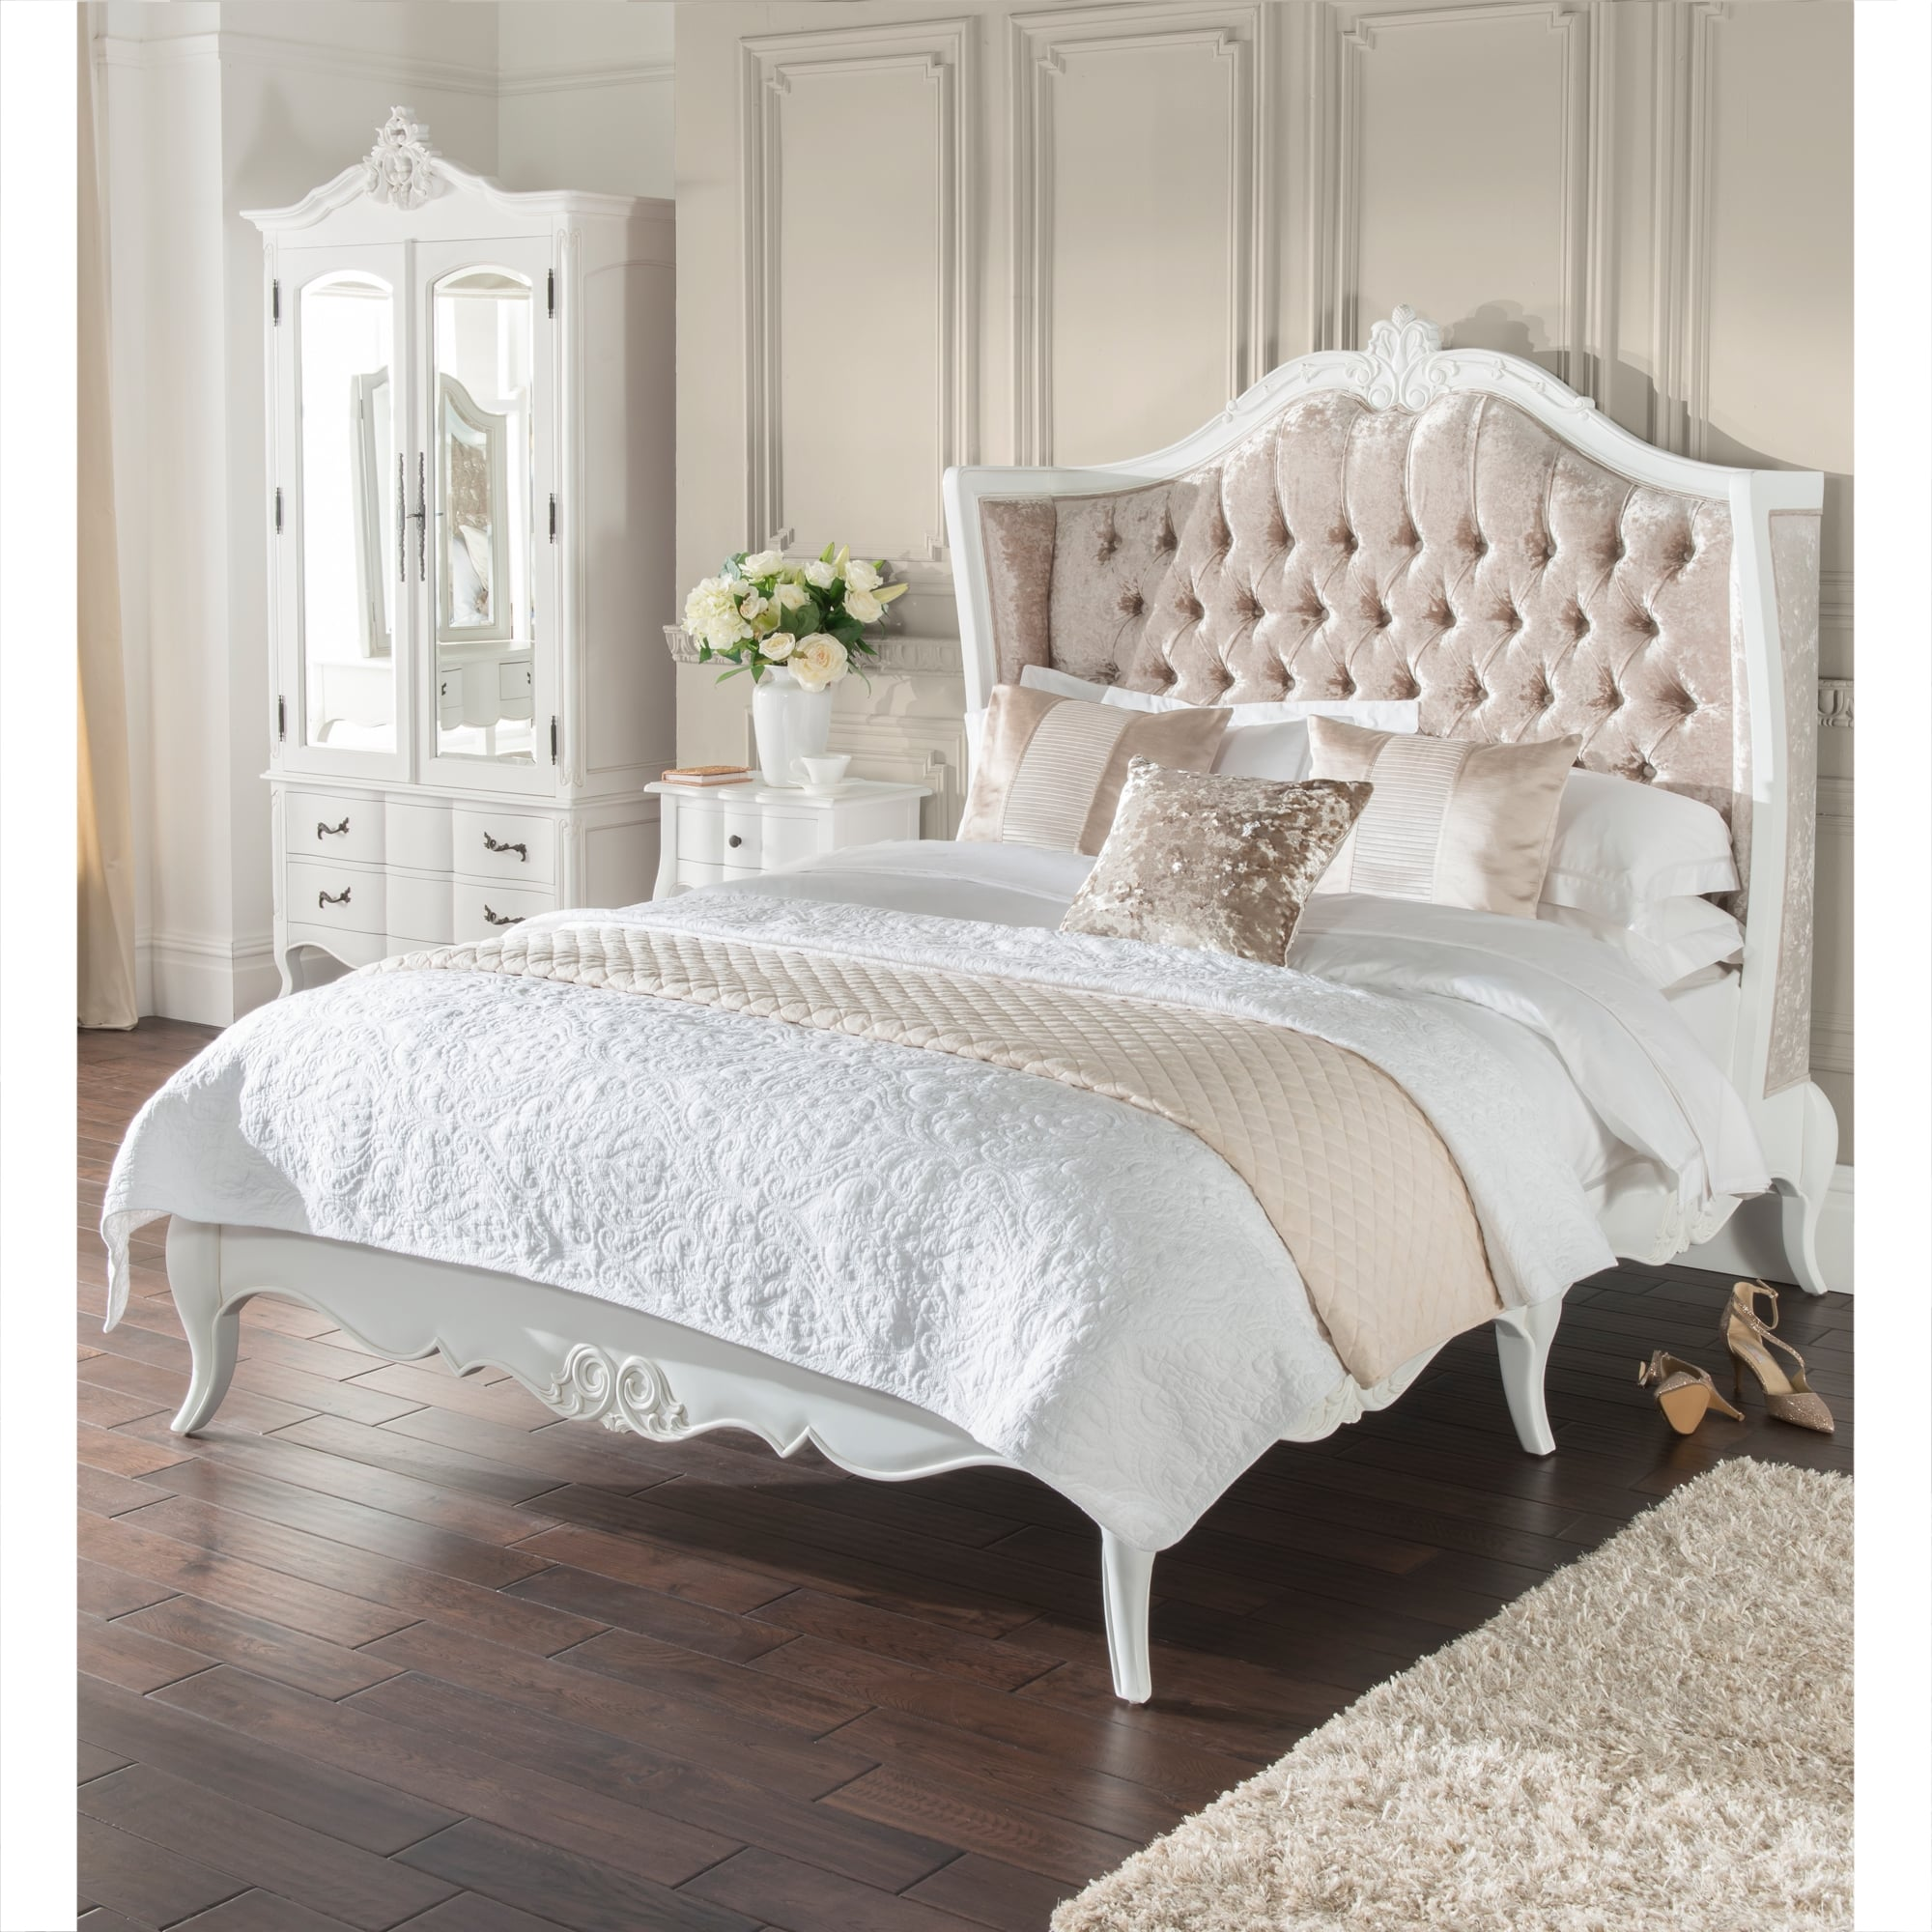 The estelle bedroom collection french style shabby chic - Shabby chic bedroom sets for sale ...